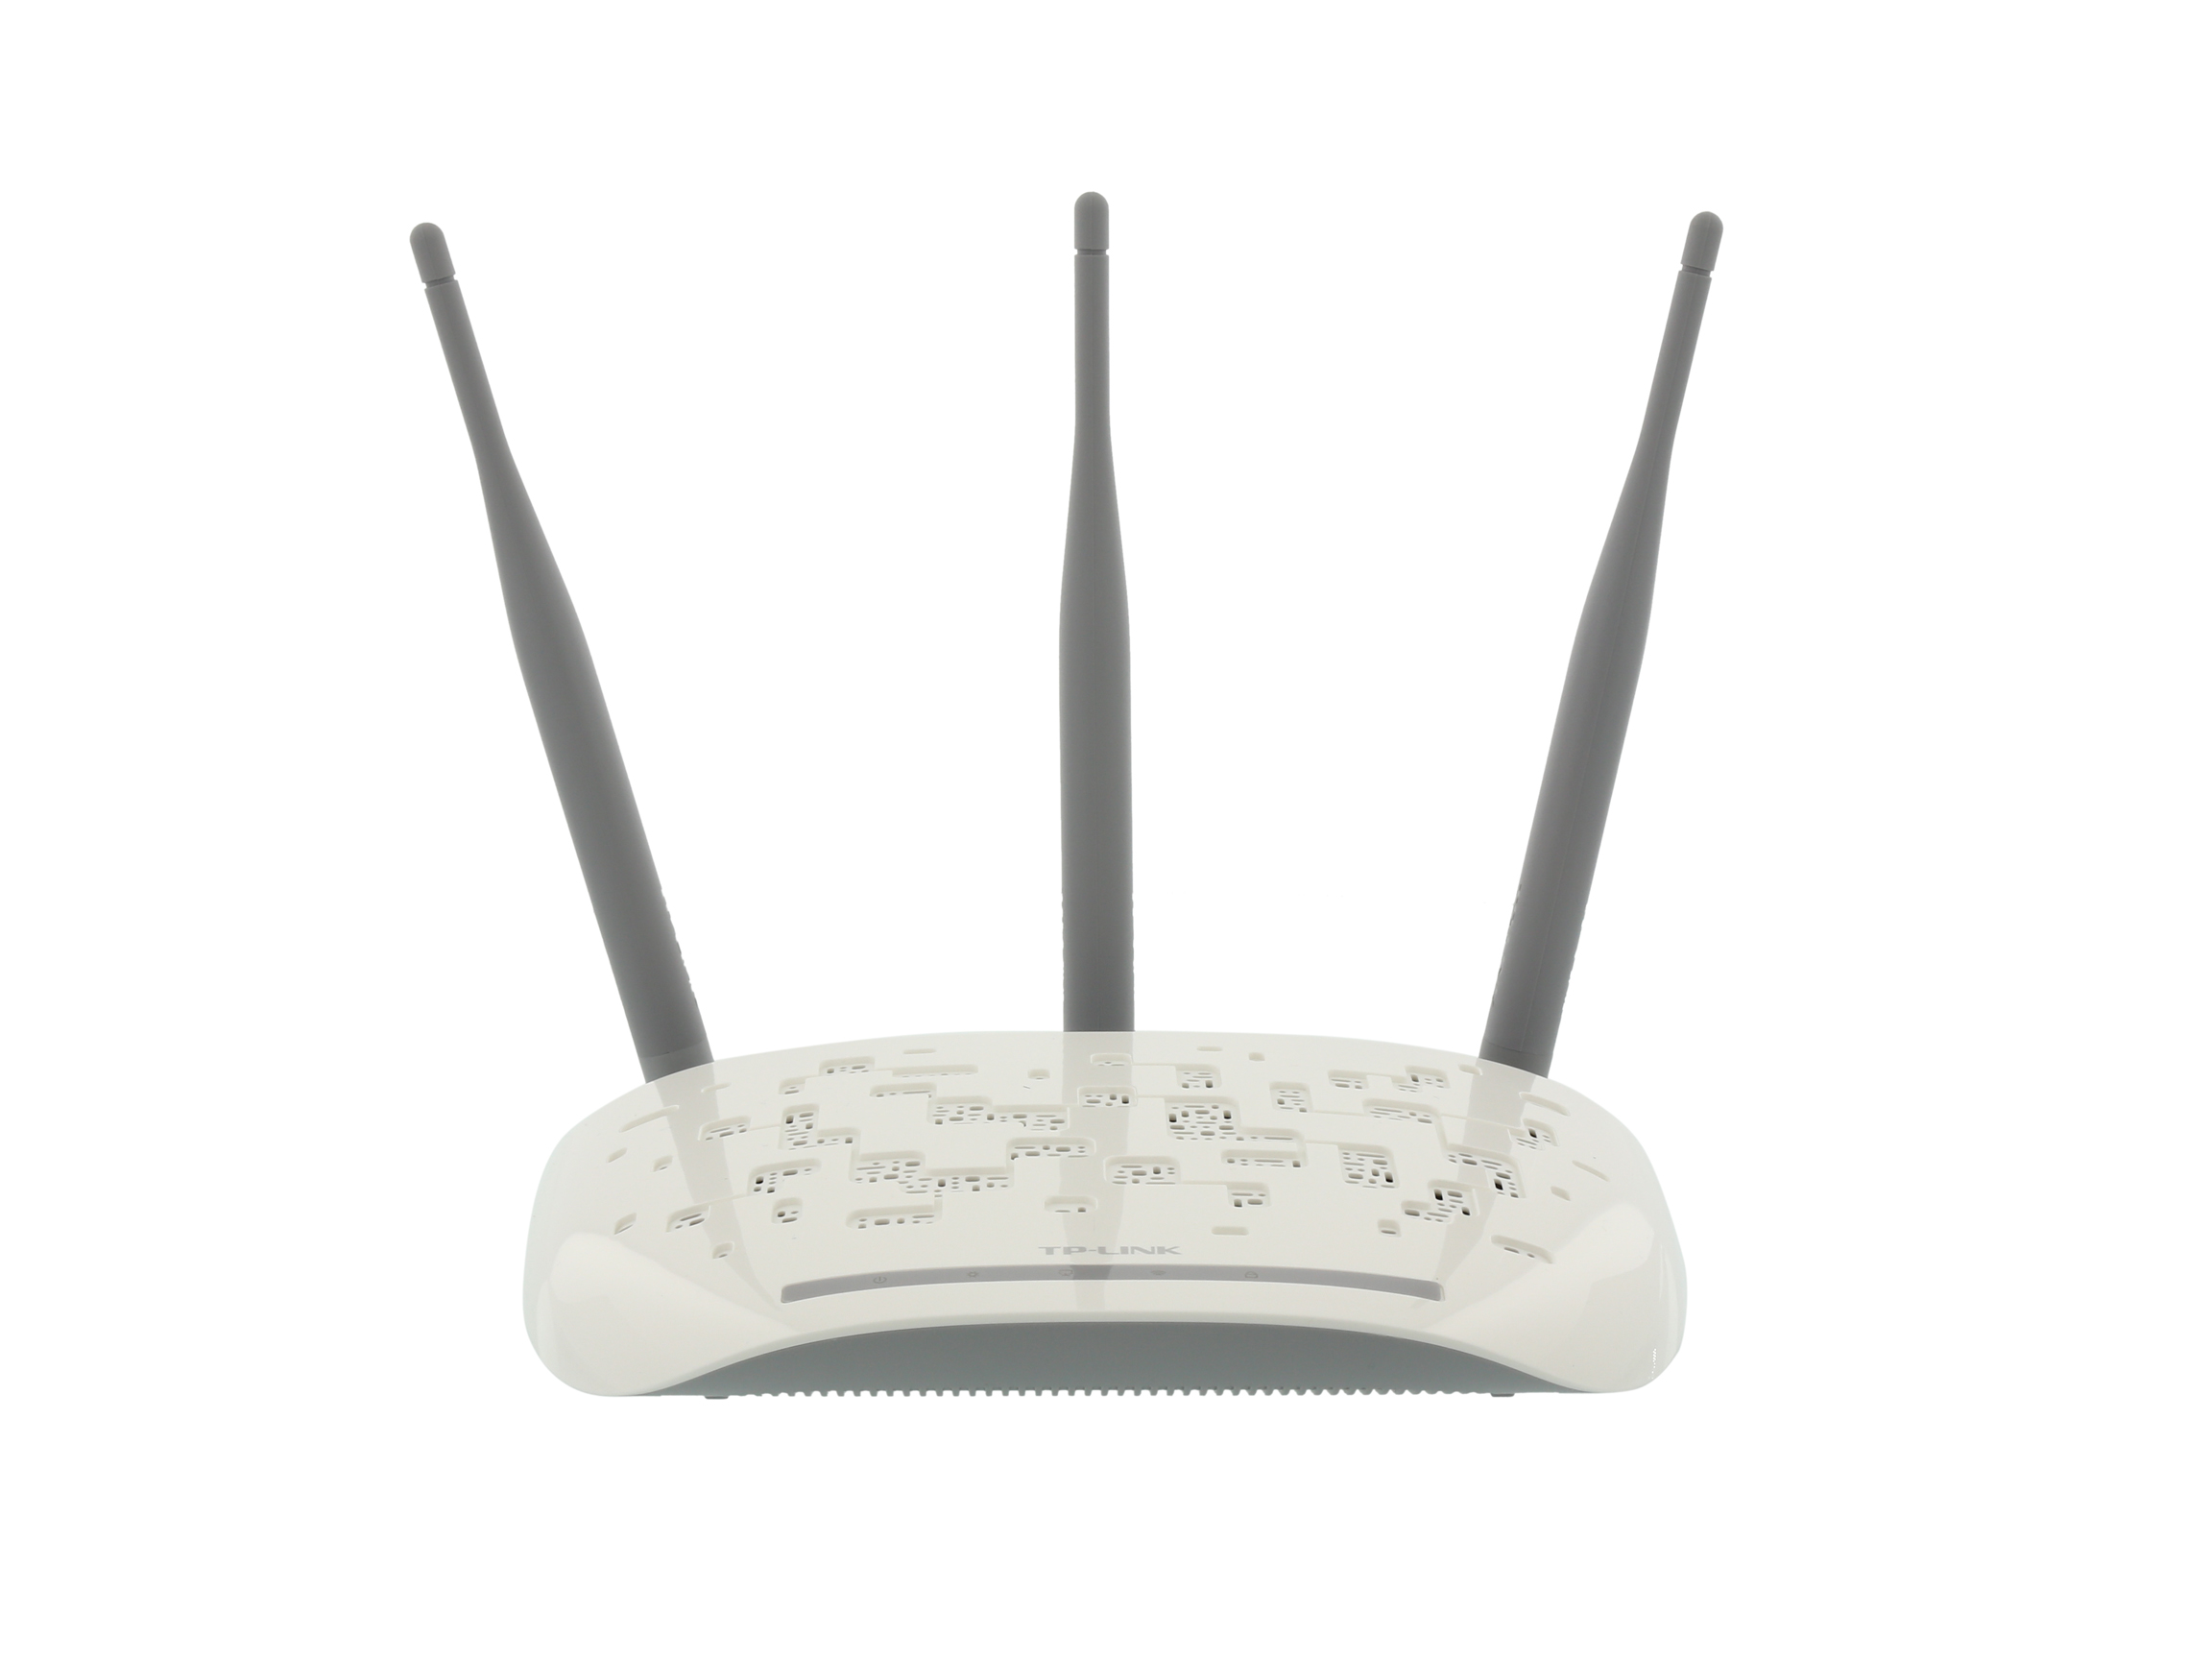 TP-LINK TL-WA901ND Wireless N300 Access Point, 300Mbps, Multifunction, Multiple SSID